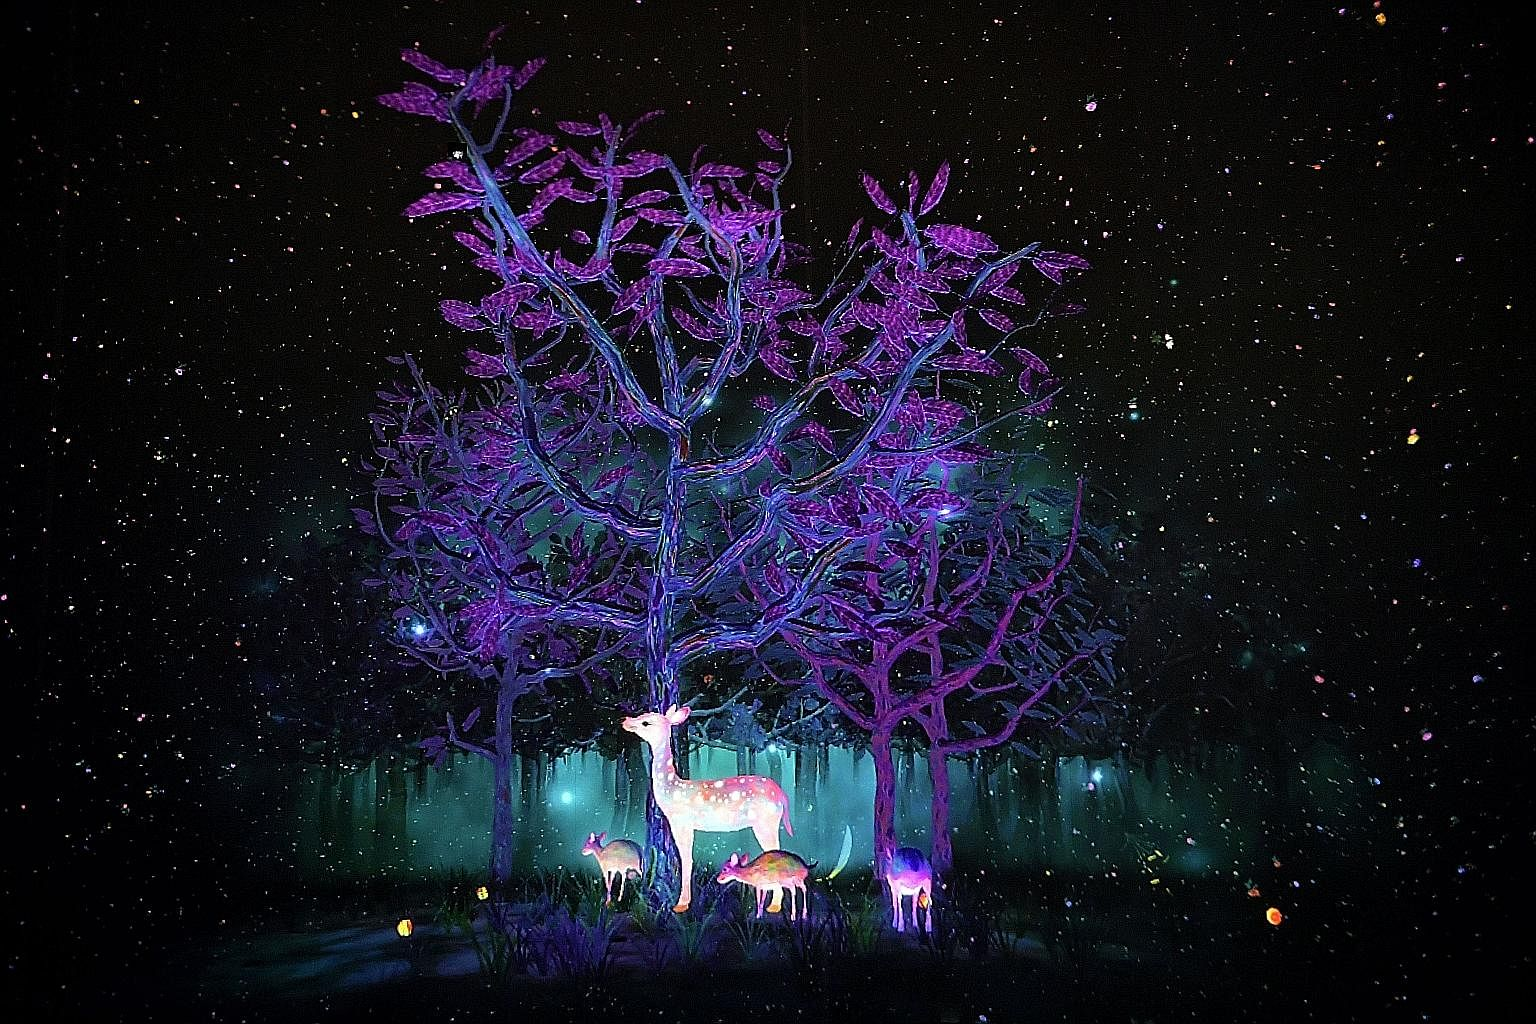 A tapir and a deer are among the inhabitants in interactive installation Story Of The Forest (above), which brings to life works from the National Museum's William Farquhar Collection of Natural History Drawings.